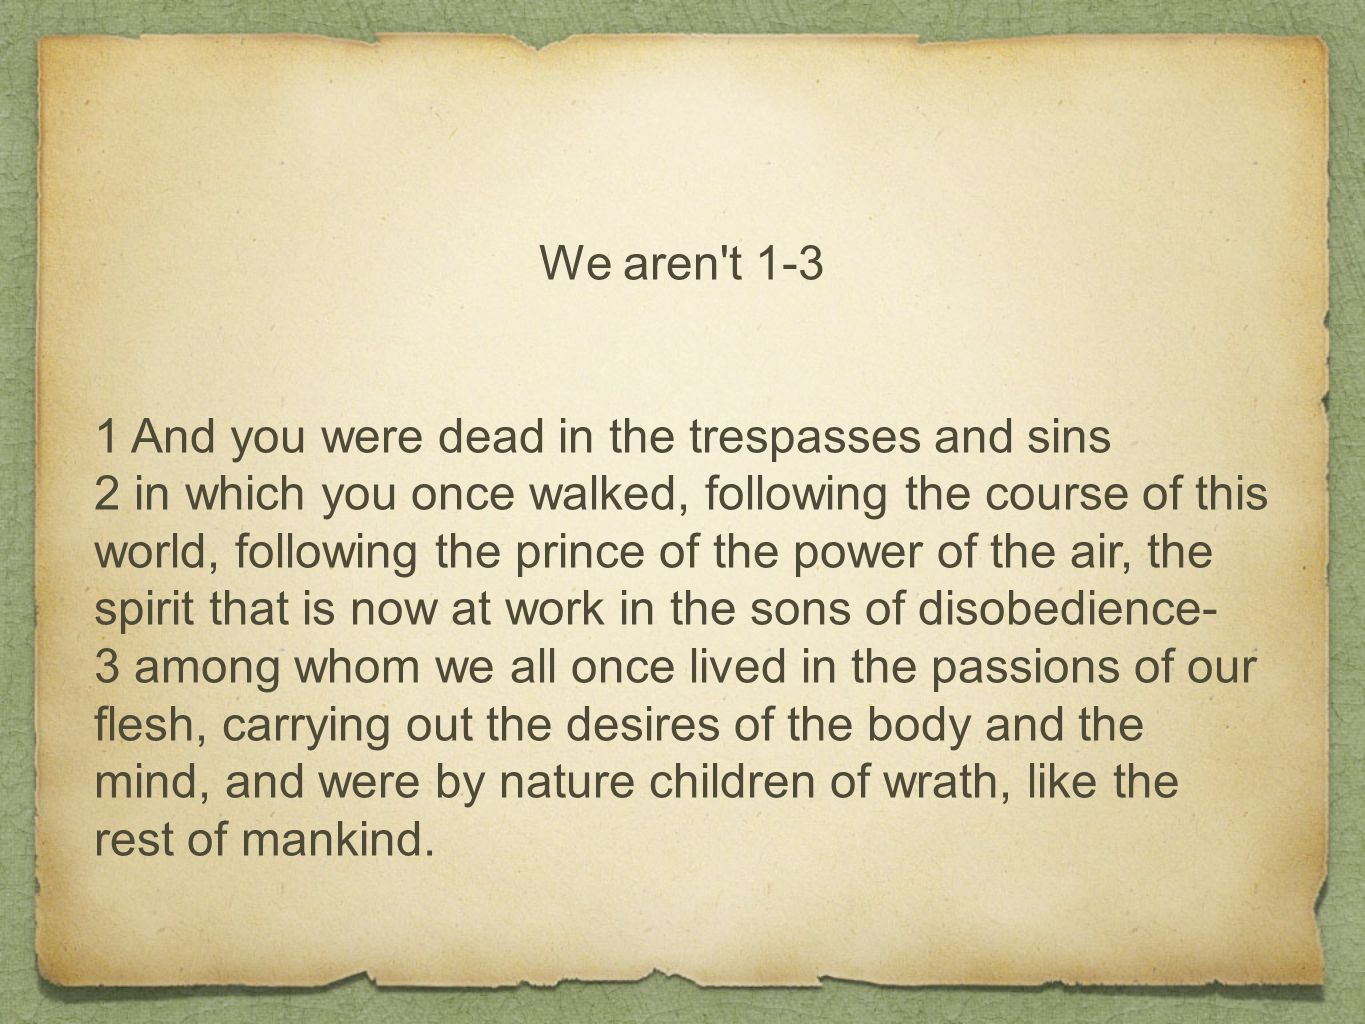 We aren't 1-3 1 And you were dead in the trespasses and sins 2 in which you once walked, following the course of this world, following the prince of t